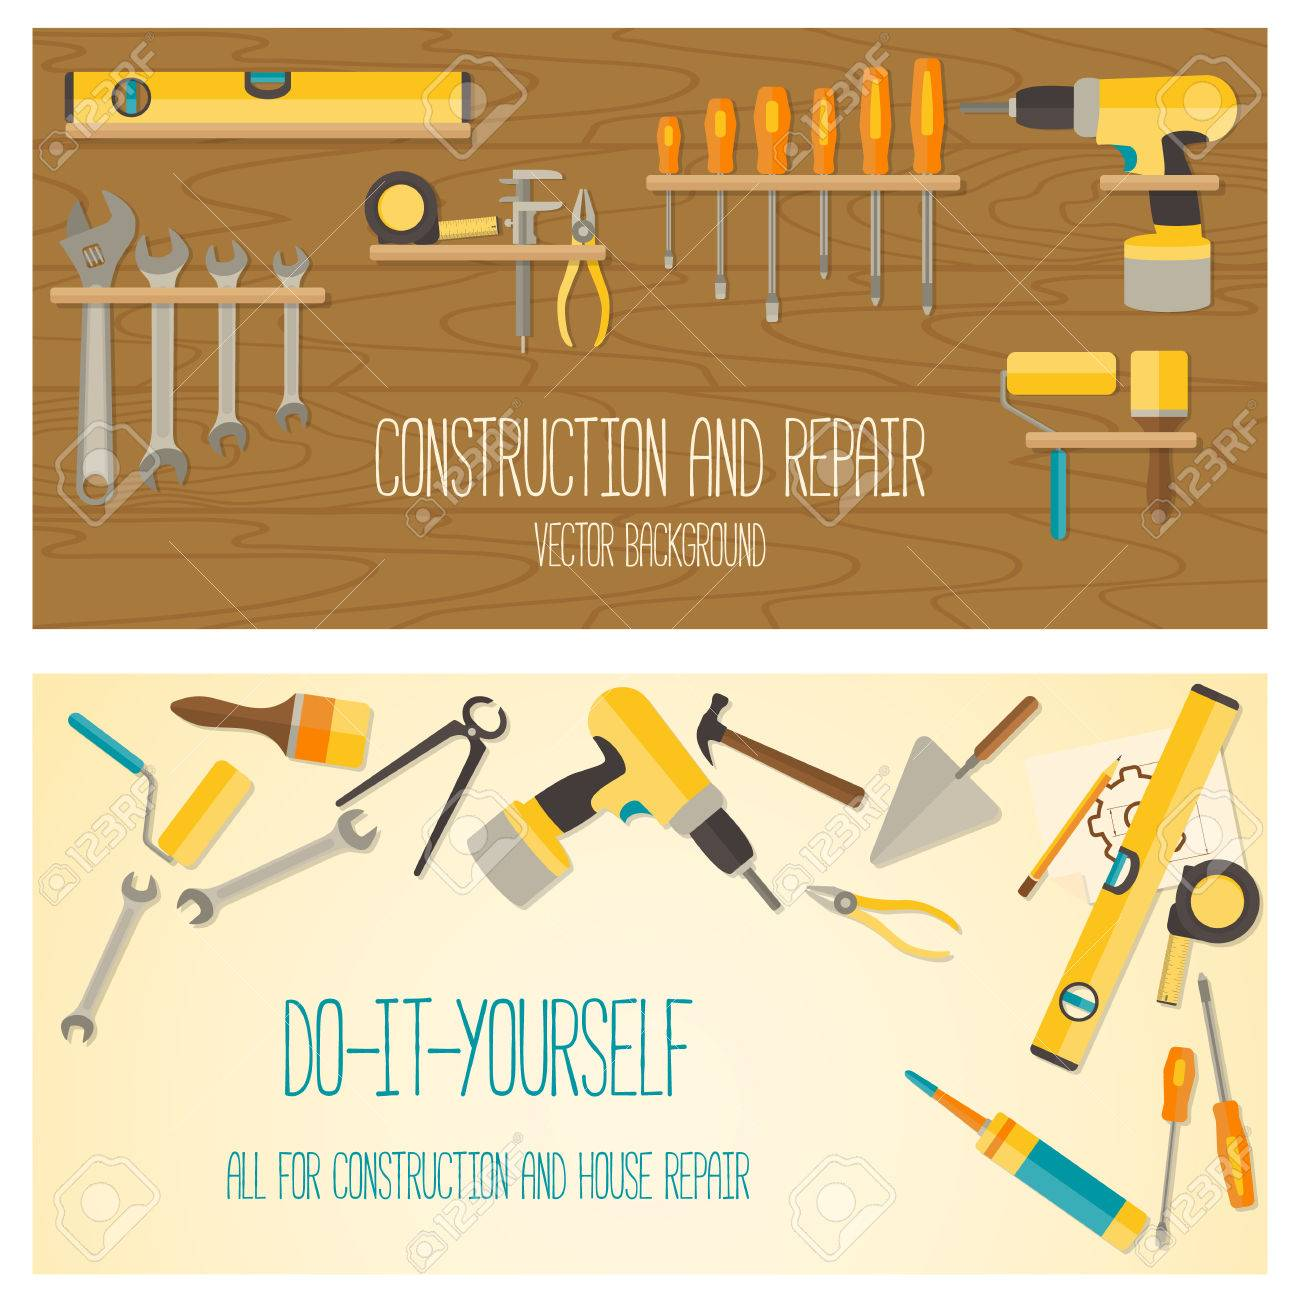 Web banner concept of diy shop vector flat design background vector web banner concept of diy shop vector flat design background with do it yourself tools for construction and home repair on wooden surface solutioingenieria Image collections